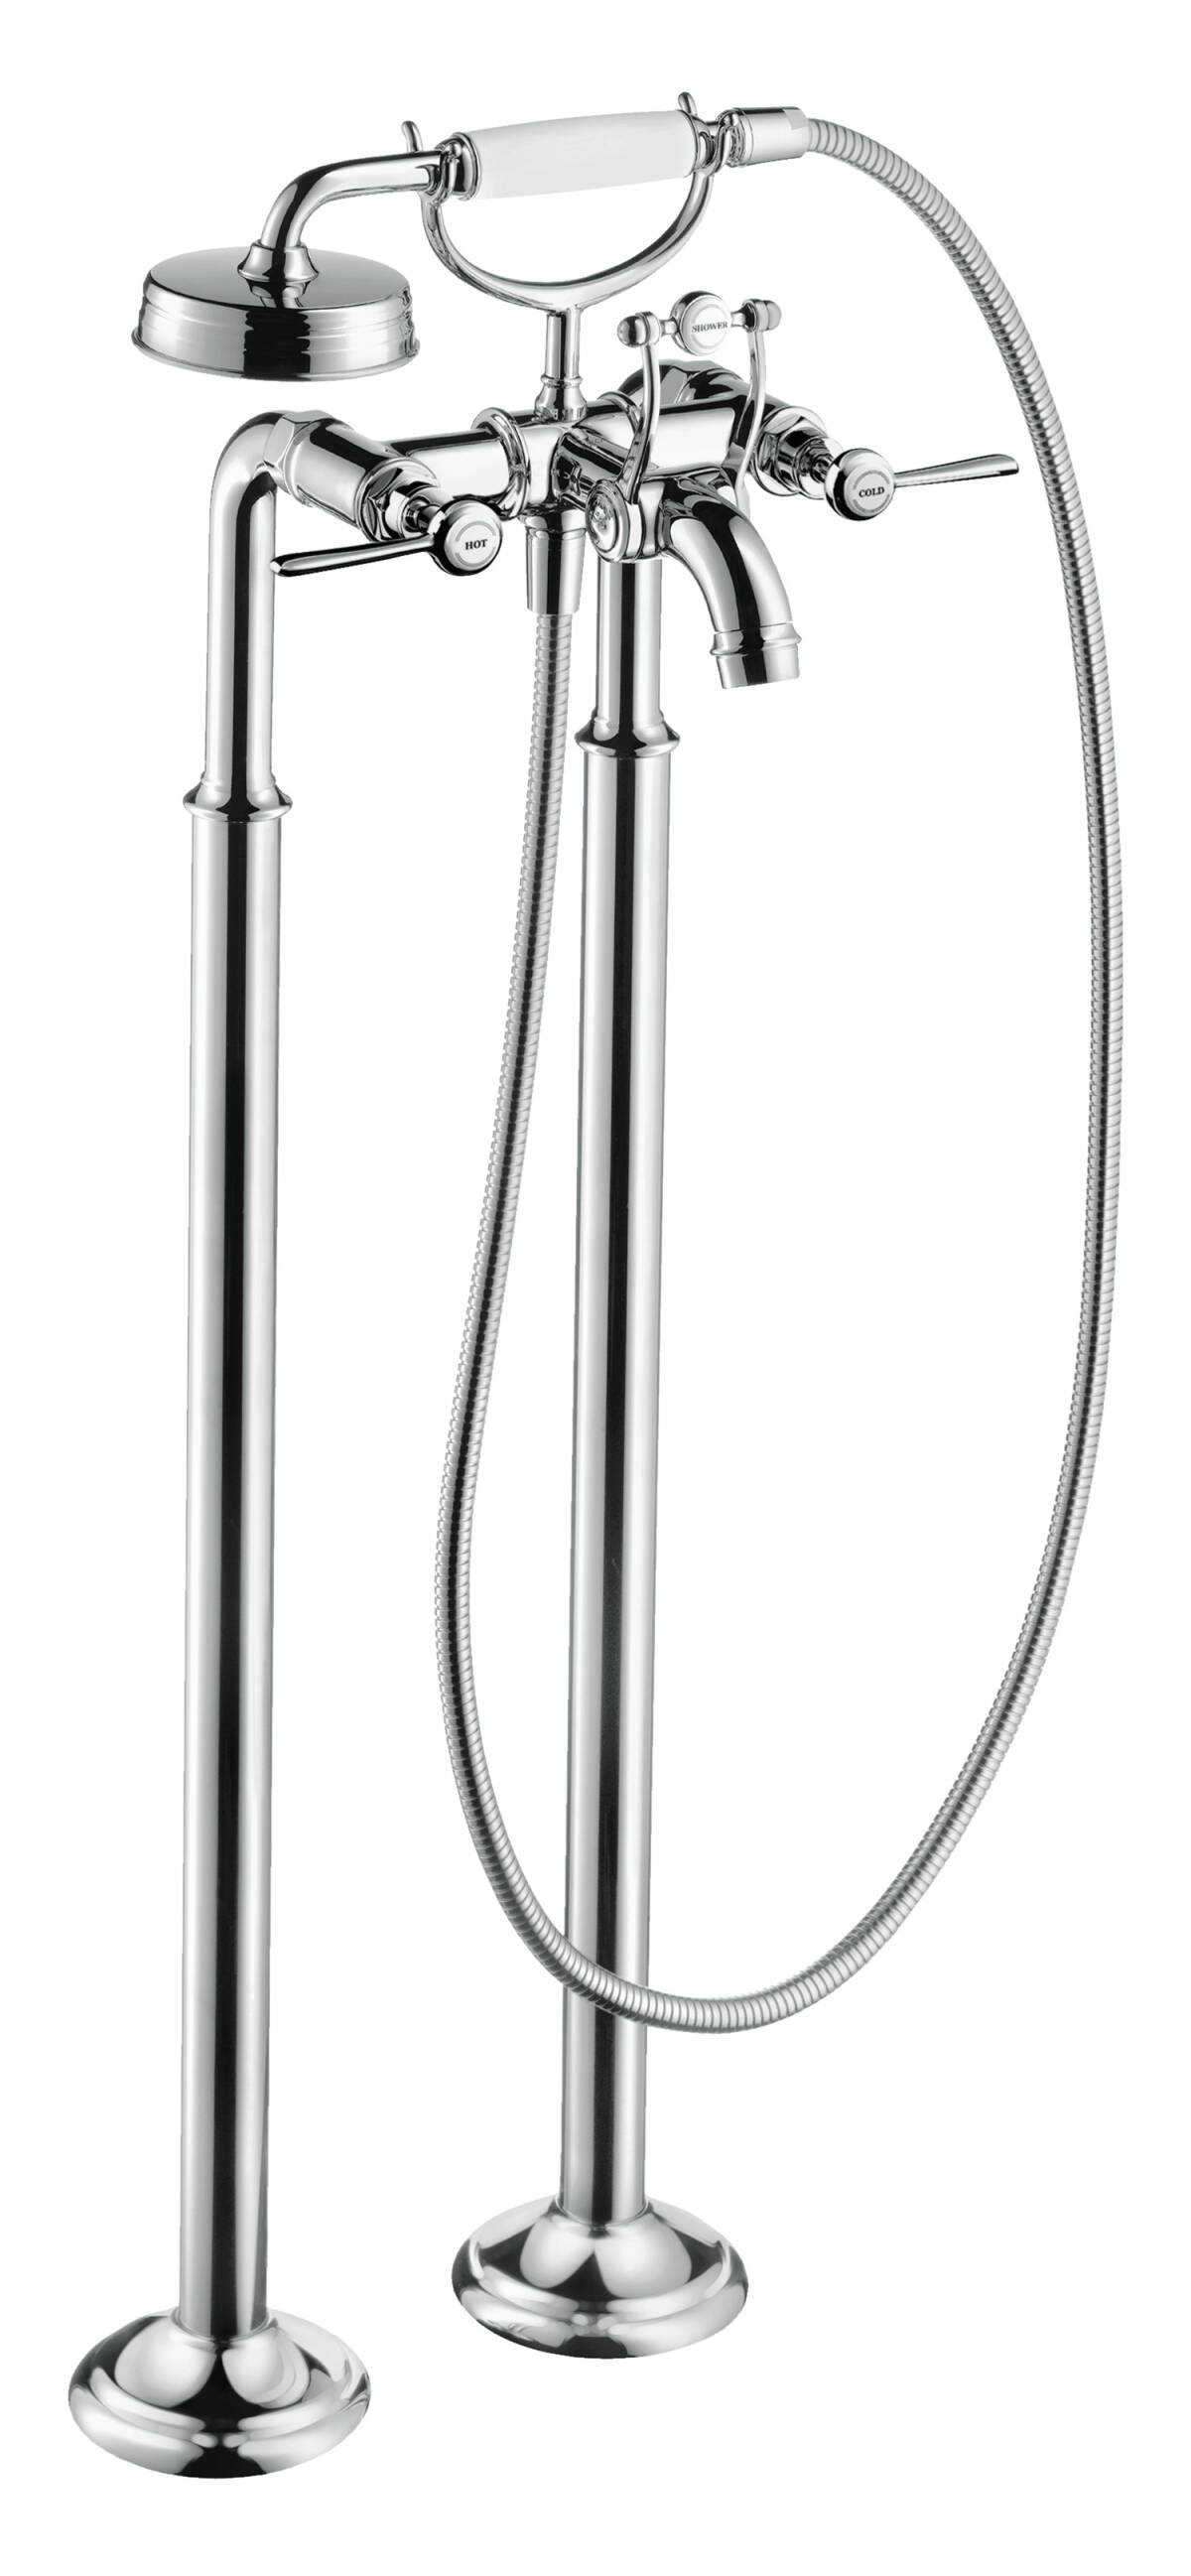 2-handle bath mixer floor-standing with lever handles, Chrome, 16553000